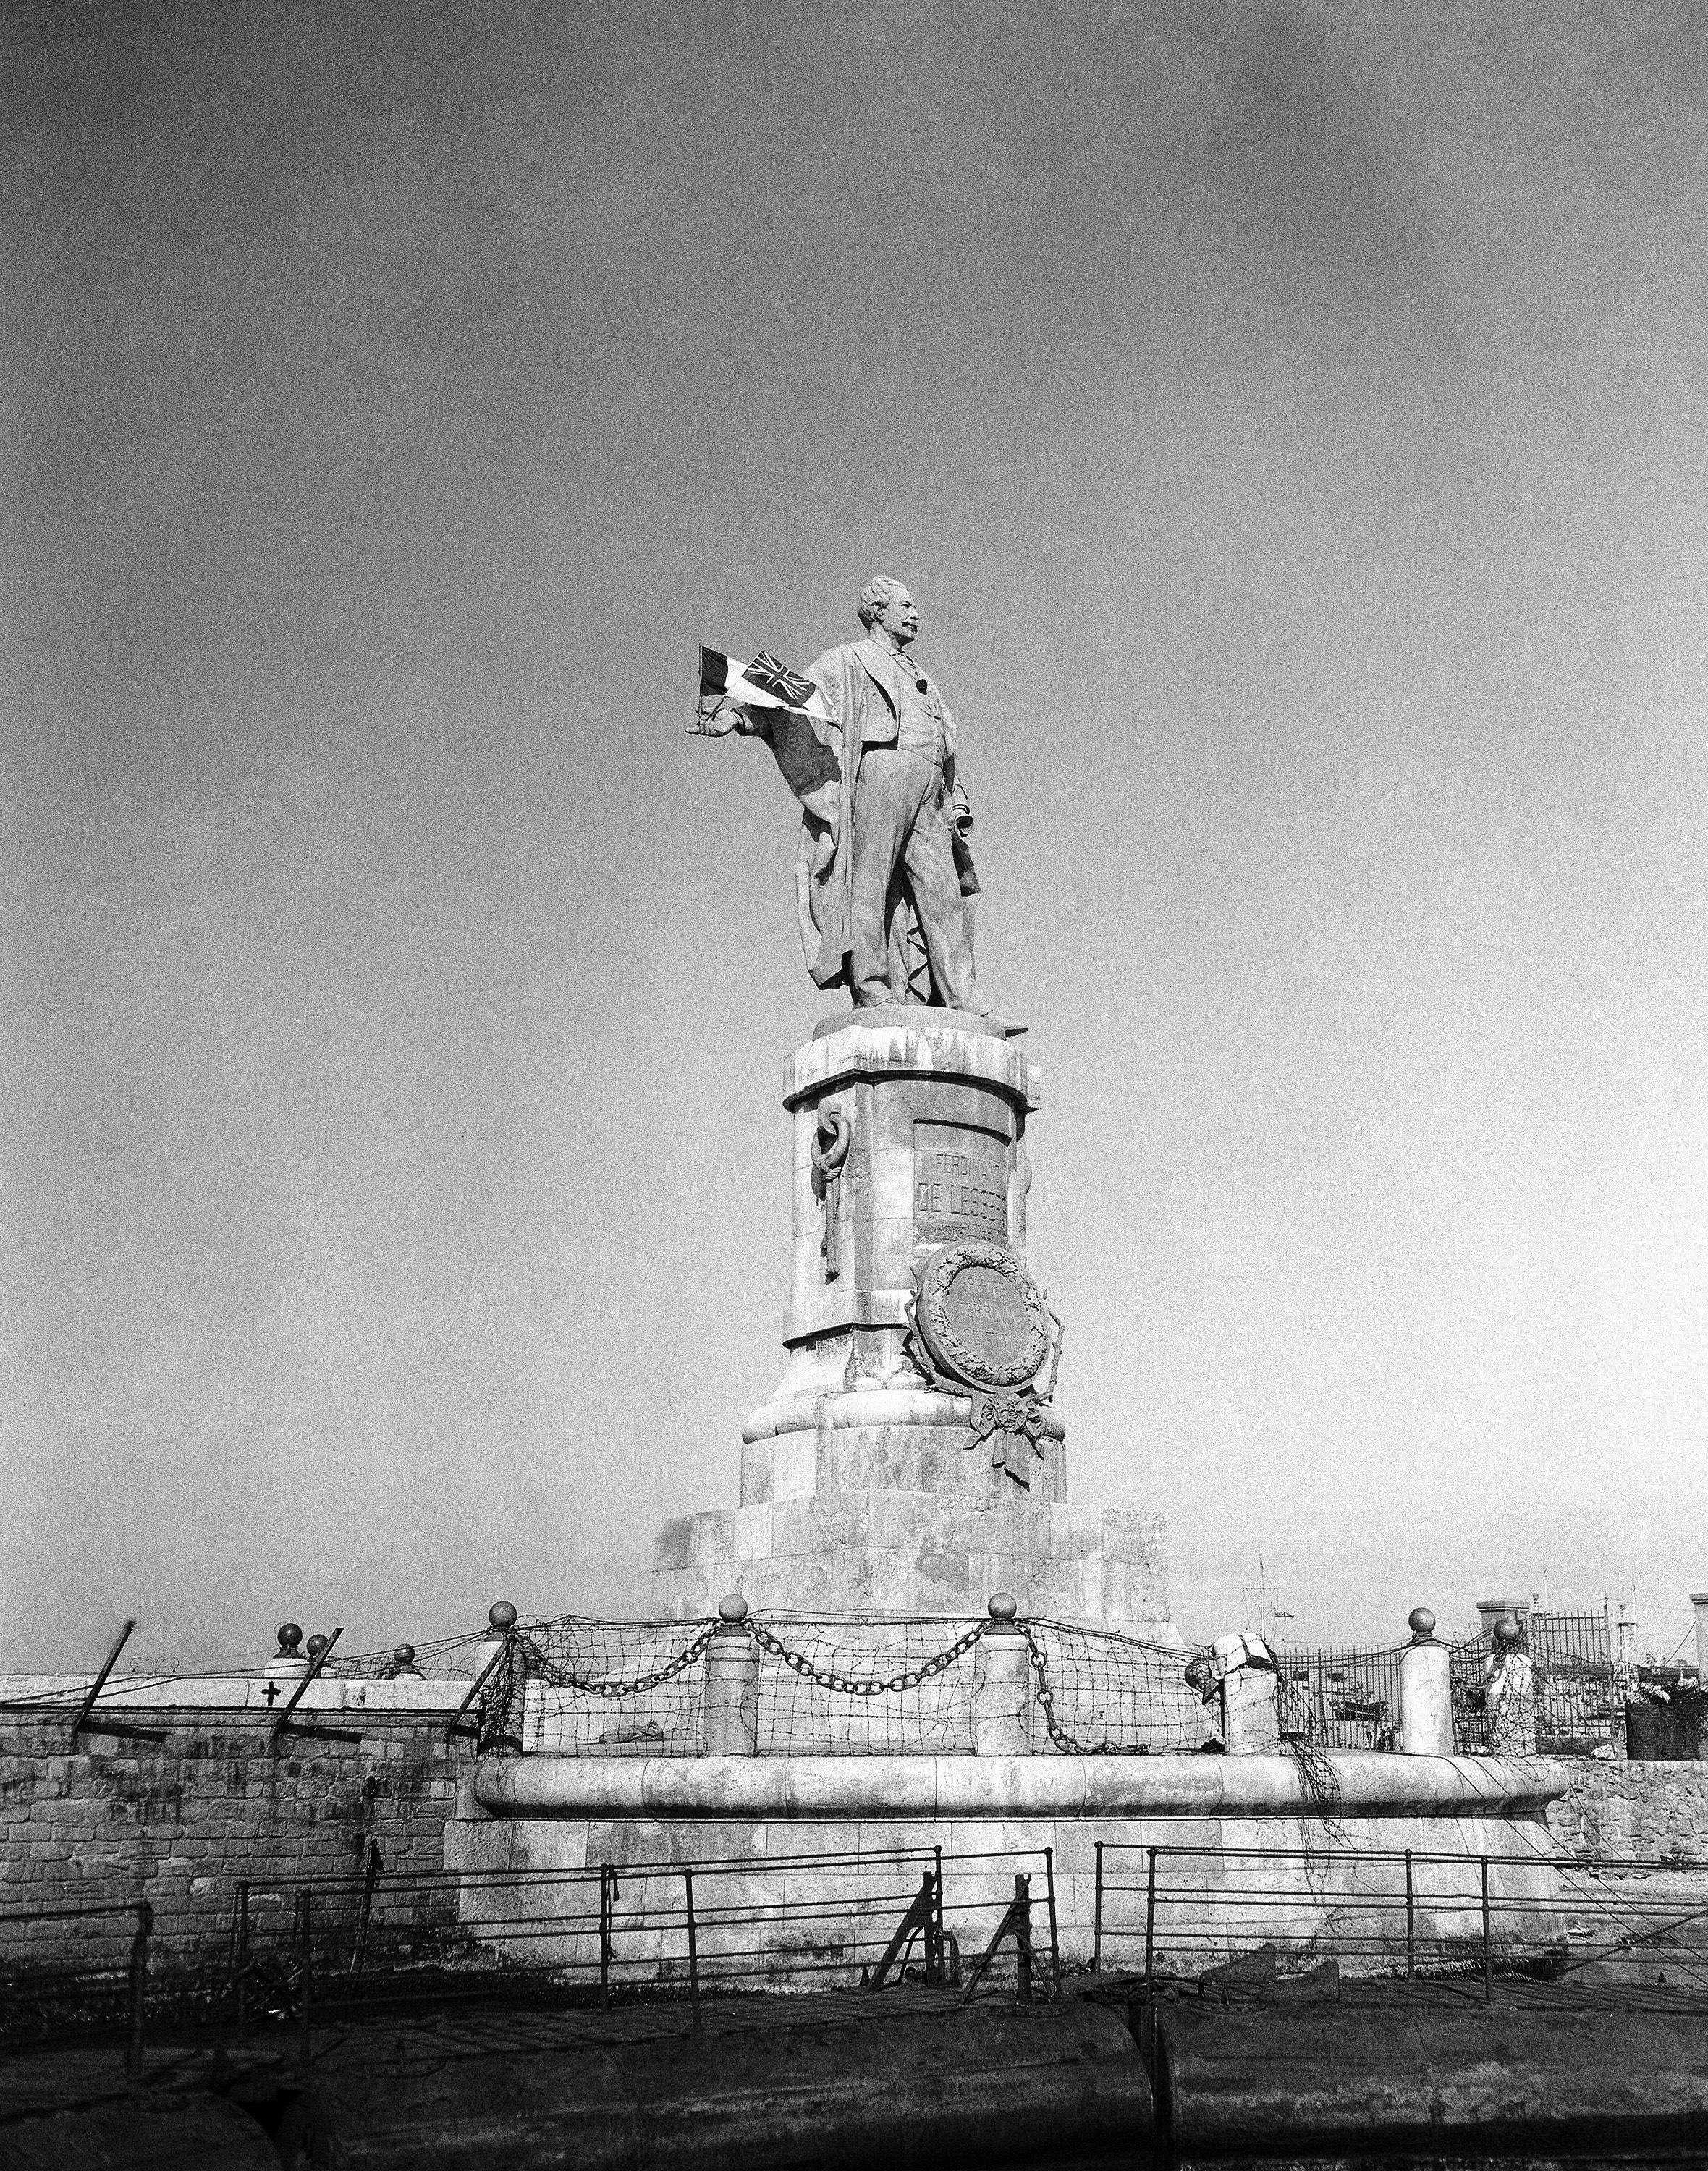 """FILE - This Dec. 22, 1956 file photo, shows the statue of Ferdinand de Lesseps, the French diplomat who was behind the construction of Egypt's Suez Canal, in the harbor of Port Said, Egypt. A proposal to bring back the statue has stirred controversy in Egypt with many saying it would be a salute to colonial times and a """"humiliation"""" to the memory of tens of thousands of Egyptian laborers who died while digging the waterway. The debate started when a newspaper reported in June 2020 that local authorities in the Mediterranean province of Port Said were thinking of returning the statue to where it once stood at the northern entrance of the canal. (AP Photo/Jim Pringle, File)"""